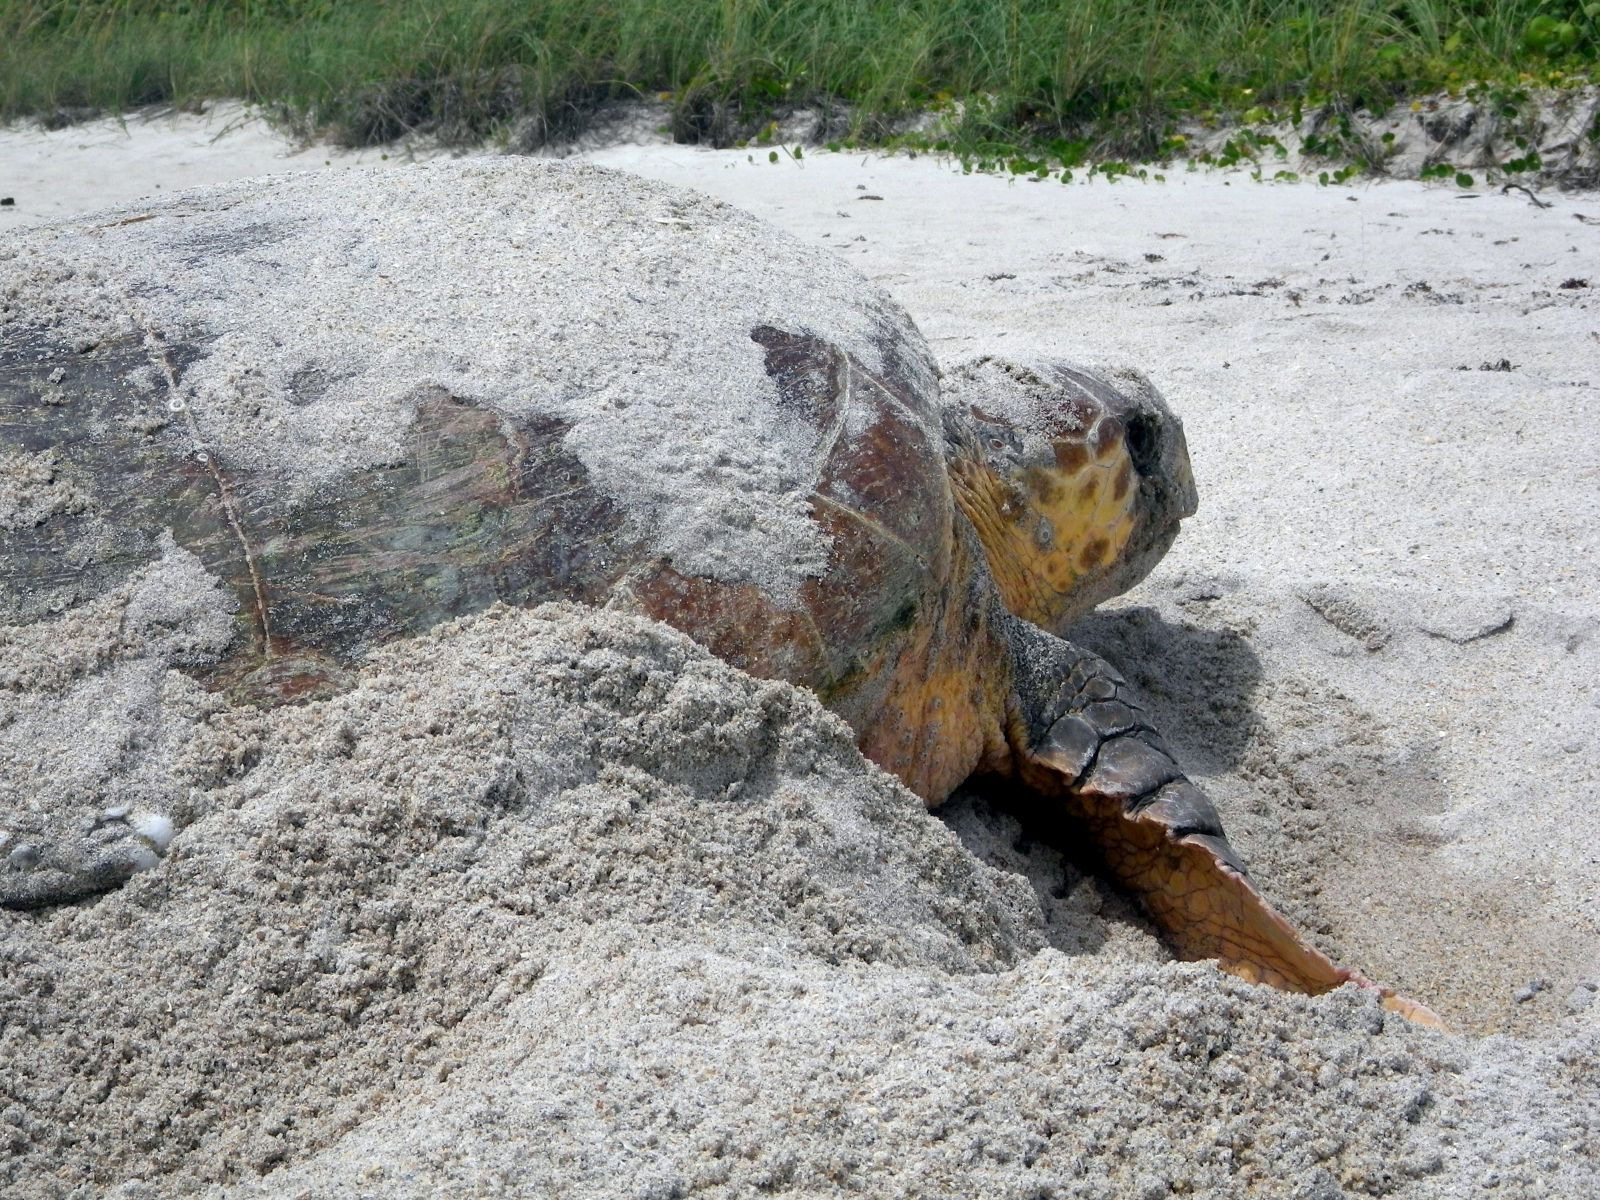 Loggerhead nesting during the day-time in Vero Beach, FL.